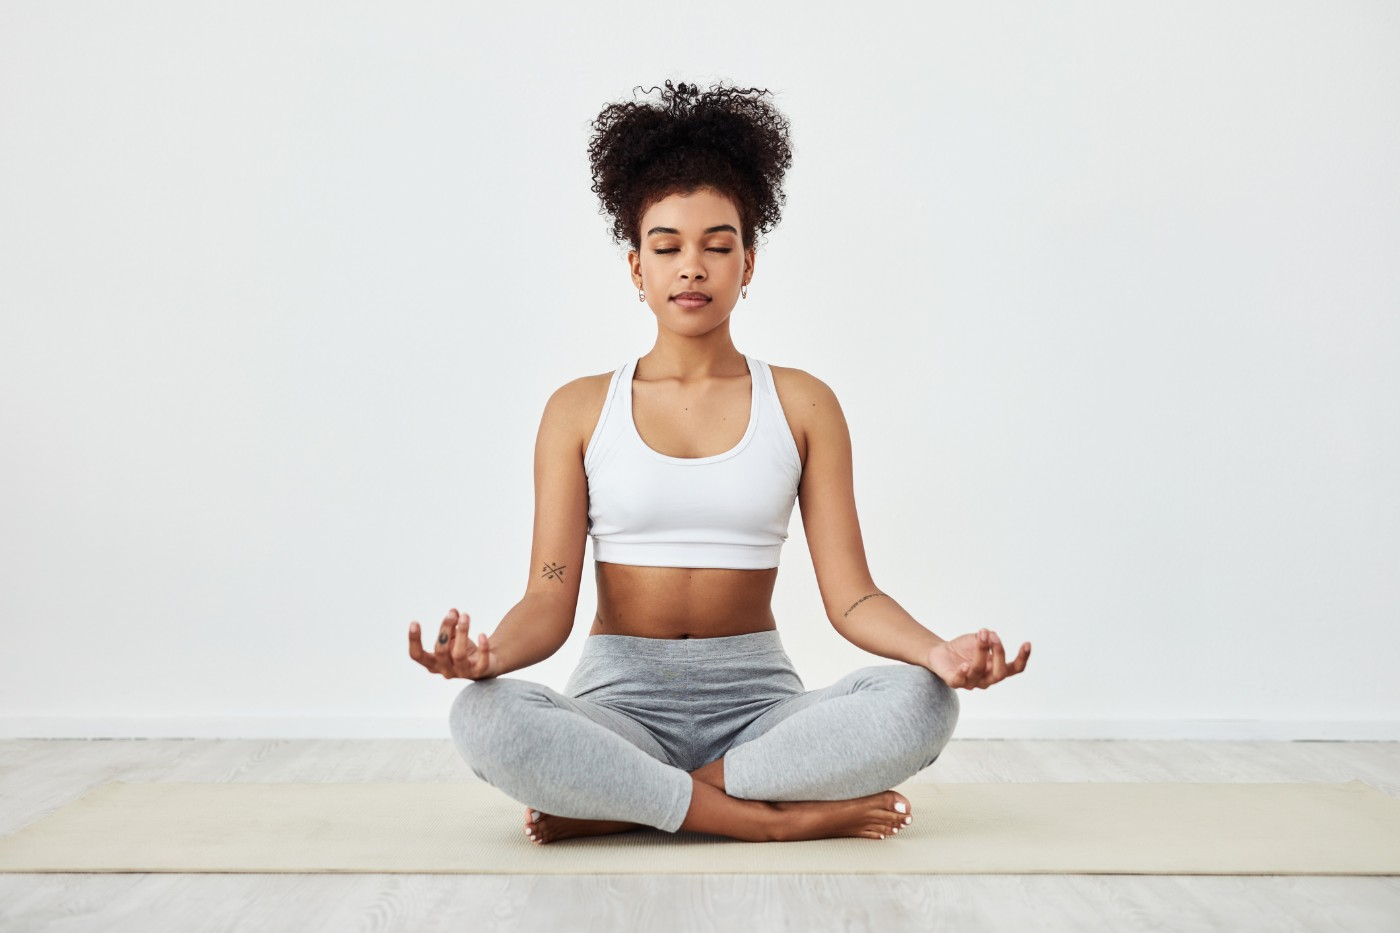 https://tickertapecdn.tdameritrade.com/assets/images/pages/md/yoga pose: de-stress your tax filing with this checklist